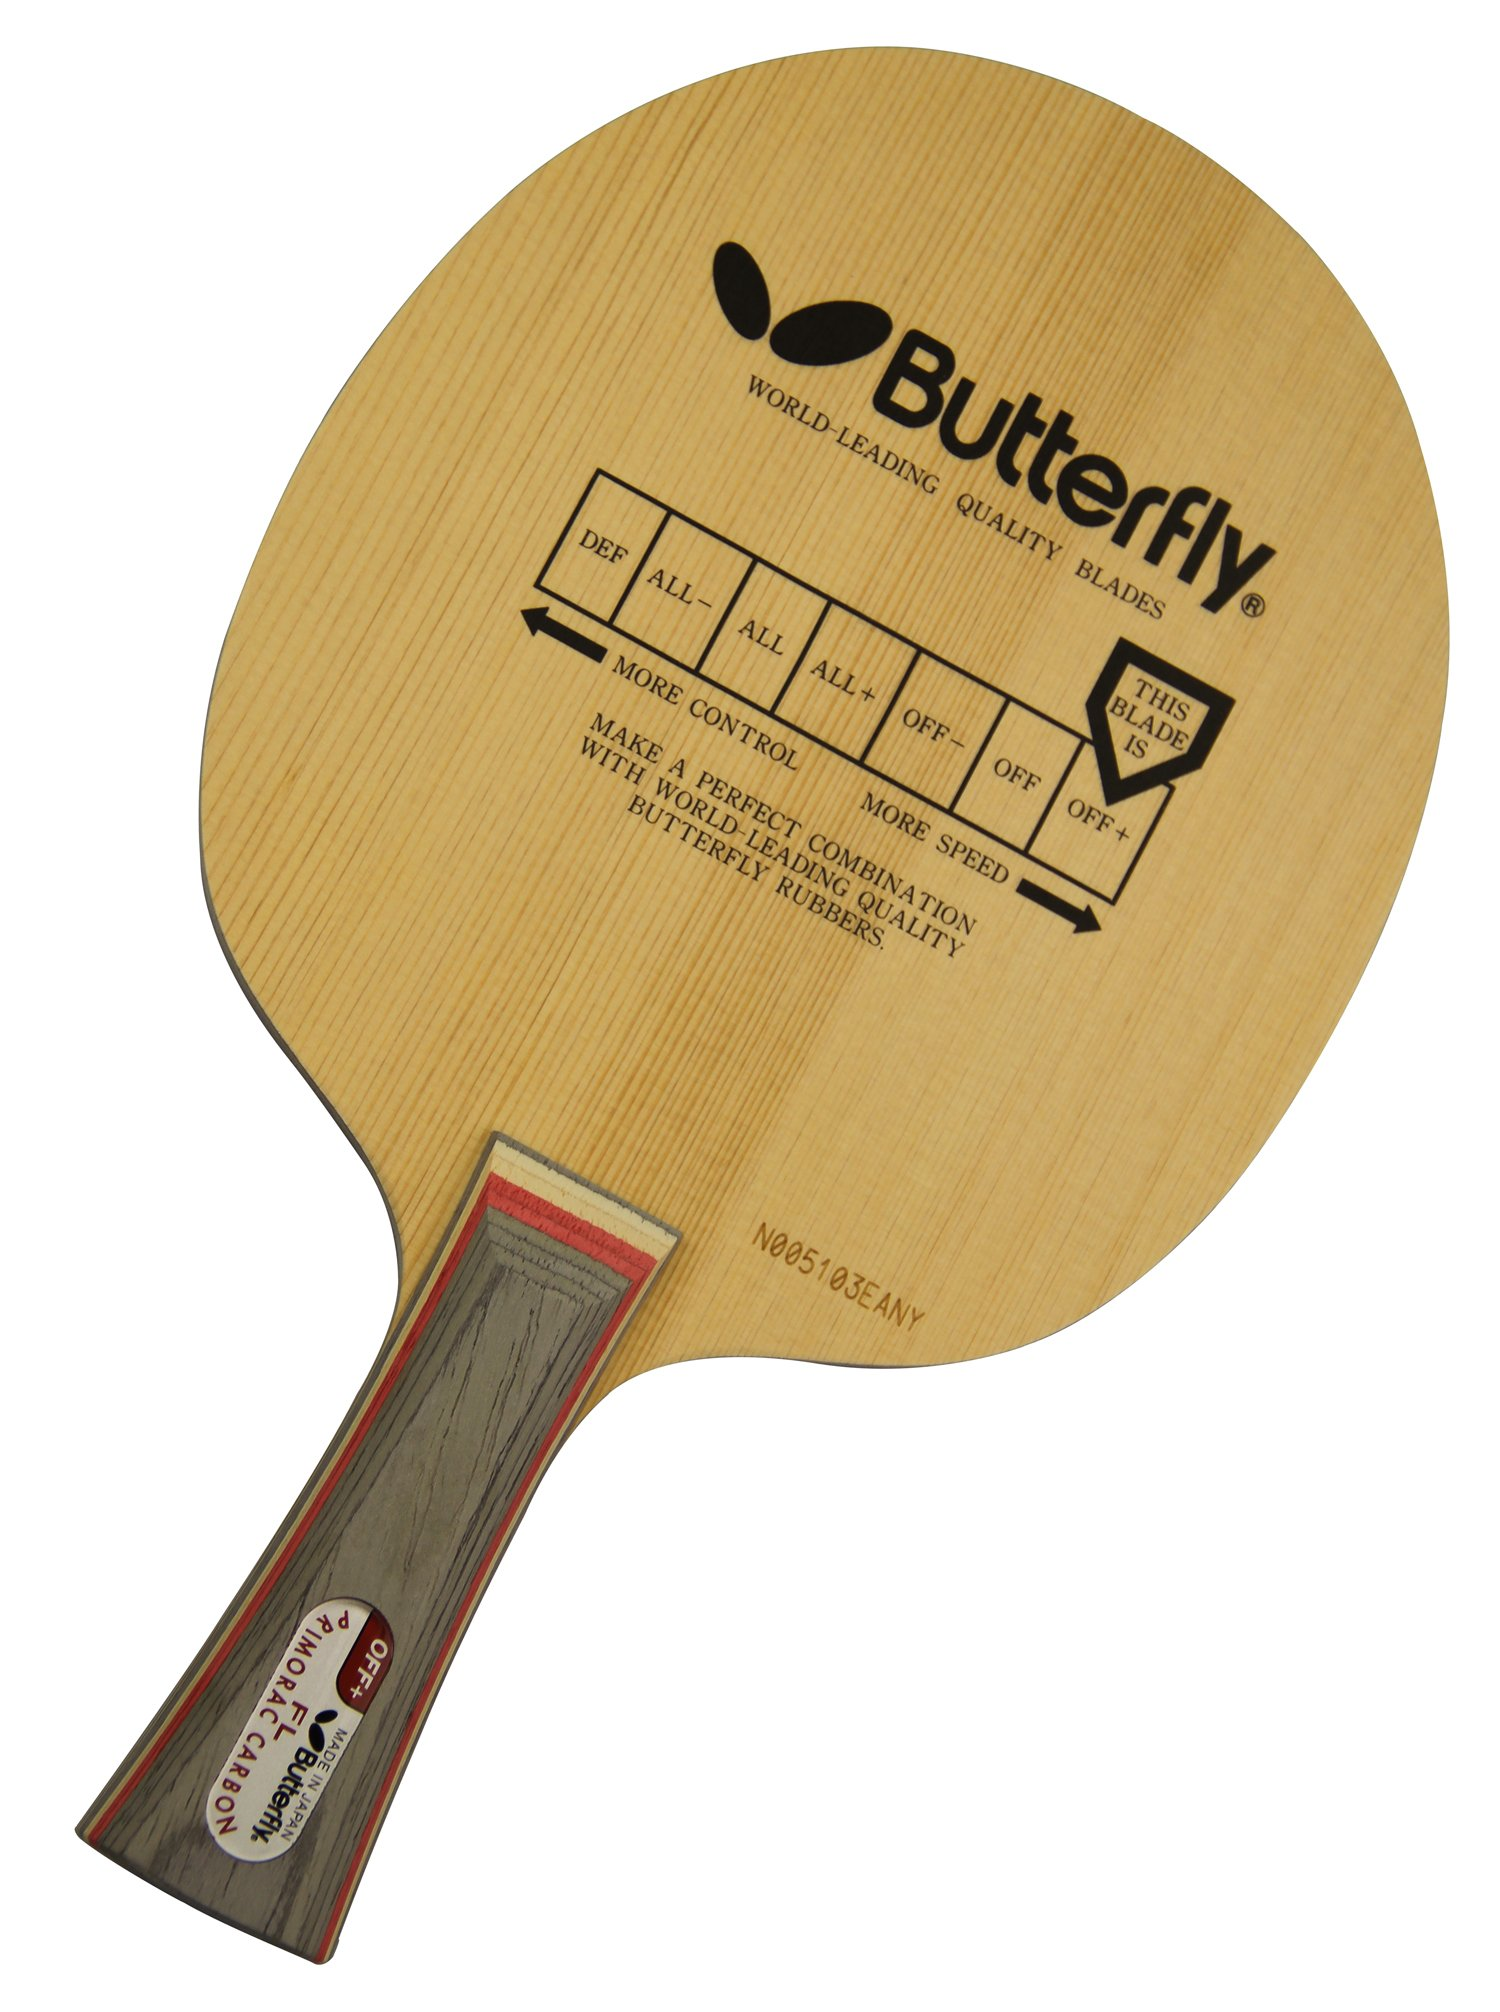 Butterfly Primorac Carbon-FL Blade with Flared Handle by Butterfly